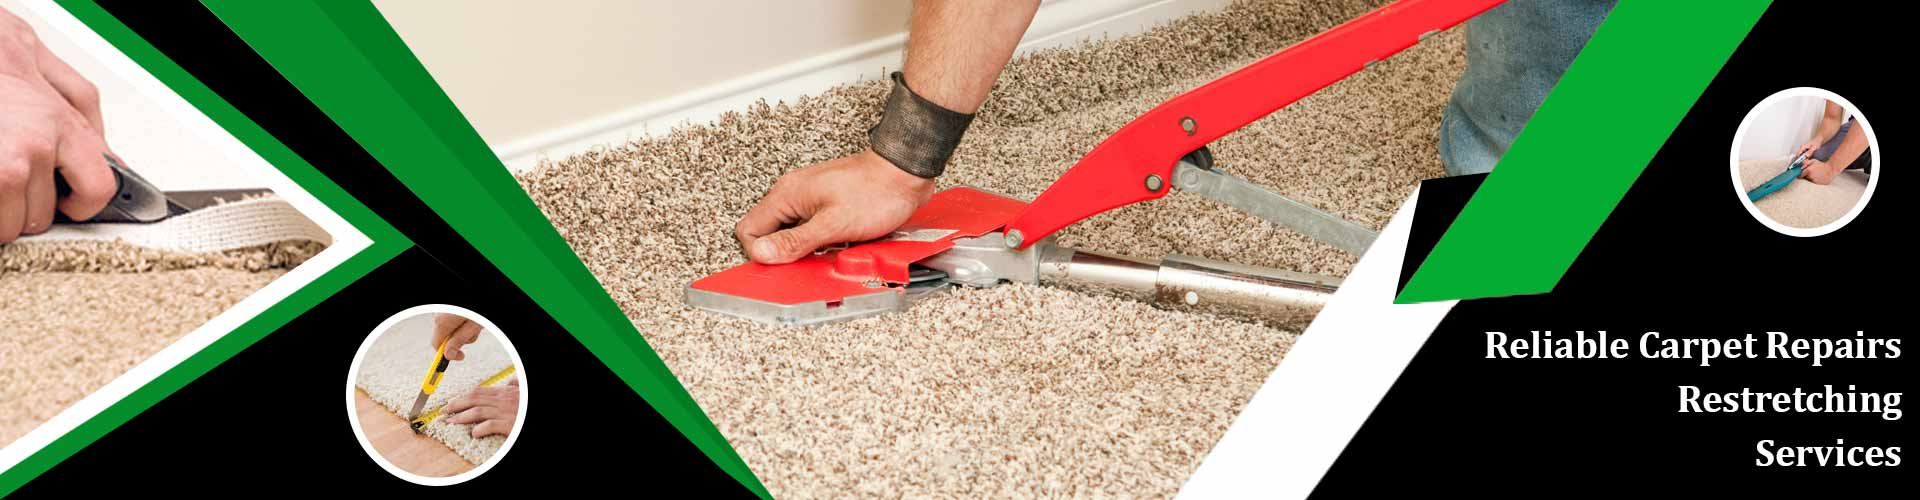 Carpet Repair and Restretching Services